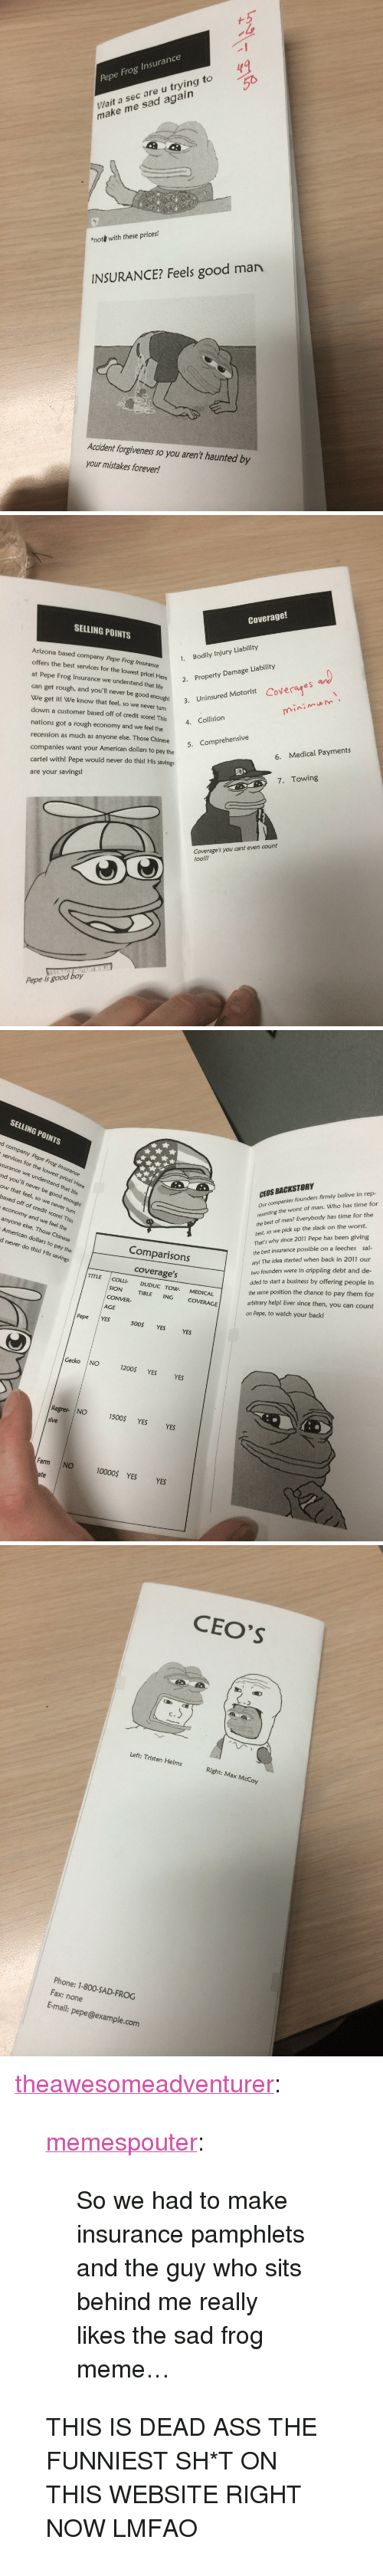 """pepe frog: Pepe Frog Insurance  Wait a sec are u trying to  make me sad agairn  """"not  with these prices!  INSURANCE? Feels good man  Accident forgiveness so you aren't haunted by  your mistakes forever!   Coverage!  SELLING POINTS  Arlzona based company Pepe Frog Insurance  offers the best services for the lowest pricel H  at Pepe Frog Insurance we understand that life  can get rough, and you'll never be good enough! 3. Uni  We get it! We know that feel, so we never turn  down a customer based off of credit score! This collision  nations got a rough economy and we feel the  recession as much as anyone else. Those Chinese 5  companies want your American dollars to pay the  cartel with! Pepe would never do this! His savings  are your savings!  1.  Bodily Injury Liability  2. Property Damage Liability  Coverae  Uninsured Motorist  nini  6. Medical Payments  7. Towing  Coverage's you cant even count  tool!!  Pepe is good boy   SELLING POINTS  d company Pepe Frog  CEOS BACKSTORY  Our companies founders firmly belive in rep-  resenting the worst of man. Who has time for  the best of men? Everybody has time for the  services for the lowest price! Here  surance we understand that life  nd you'll never be good enough!  ow that feel, so we never turn  based off of credit score! This  economy and we feel the  anyone else. Those Chinese  American dollars to pay the  d never do this! His savings  best,  That's why since 2011 Pepe has been giving  the best insurance possible on a leeches sal-  ary! The idea started when back in 2011 our  two founders were in crippling debt and de-  cided to start a business by offering people in  the same position the chance to pay them for  arbitrary help! Ever since then, you can count  on Pepe, to watch your back!  so we pick up the slack on the worst.  Comparisons  coverages  TITLE COLLI DUDUC TOW  MEDICAL  SION TIBLE ING COVERAGE  CONVER  AGE  Pepe YES  500$ YES  YES  Gecko NO  1200$ YES  YES  Regres- NO 500 YES YES  sive  Farm NO 1000OS YES"""